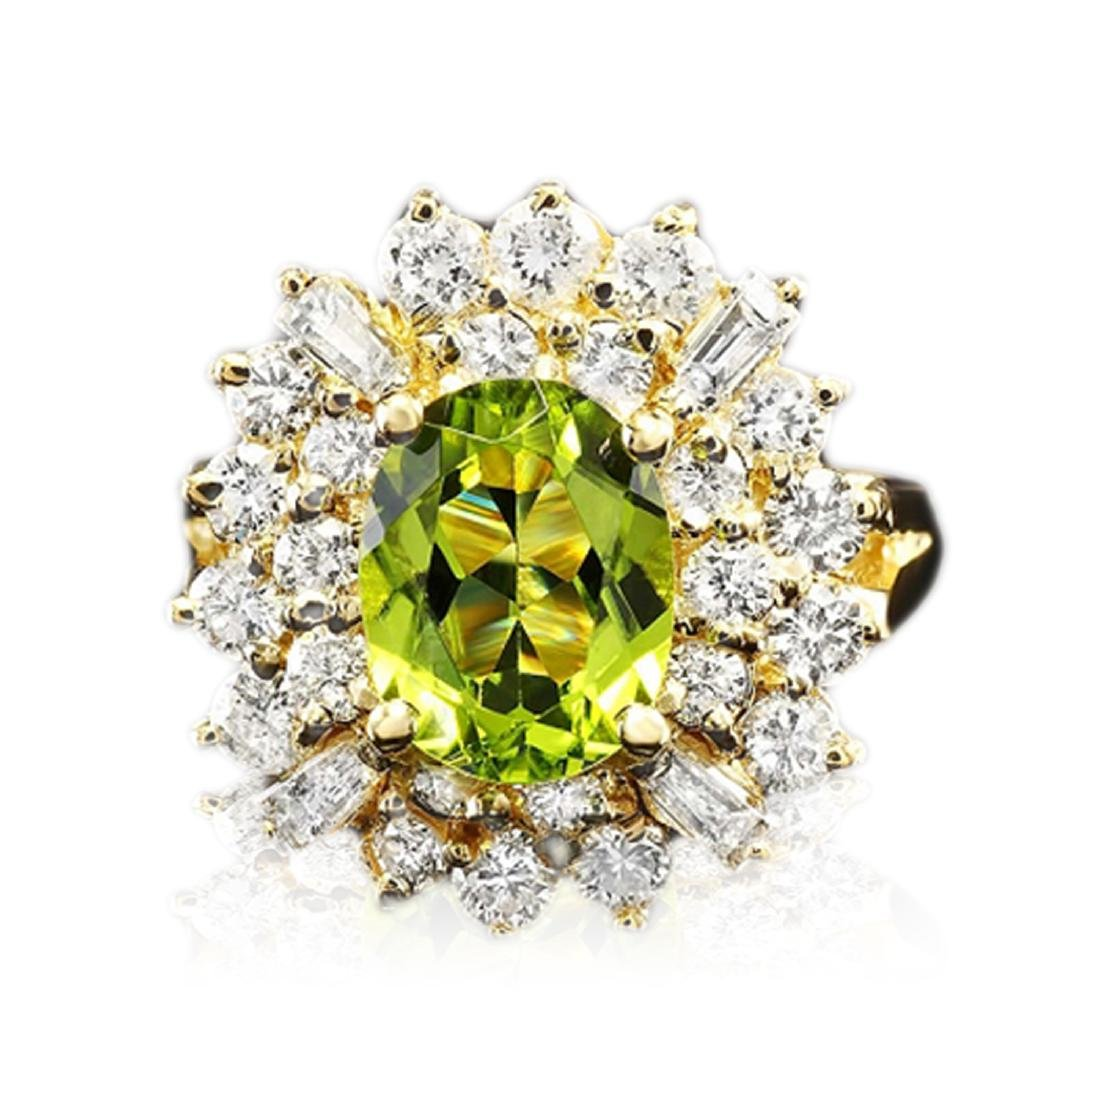 3.30 Carat Natural Peridot 18K Solid Yellow Gold